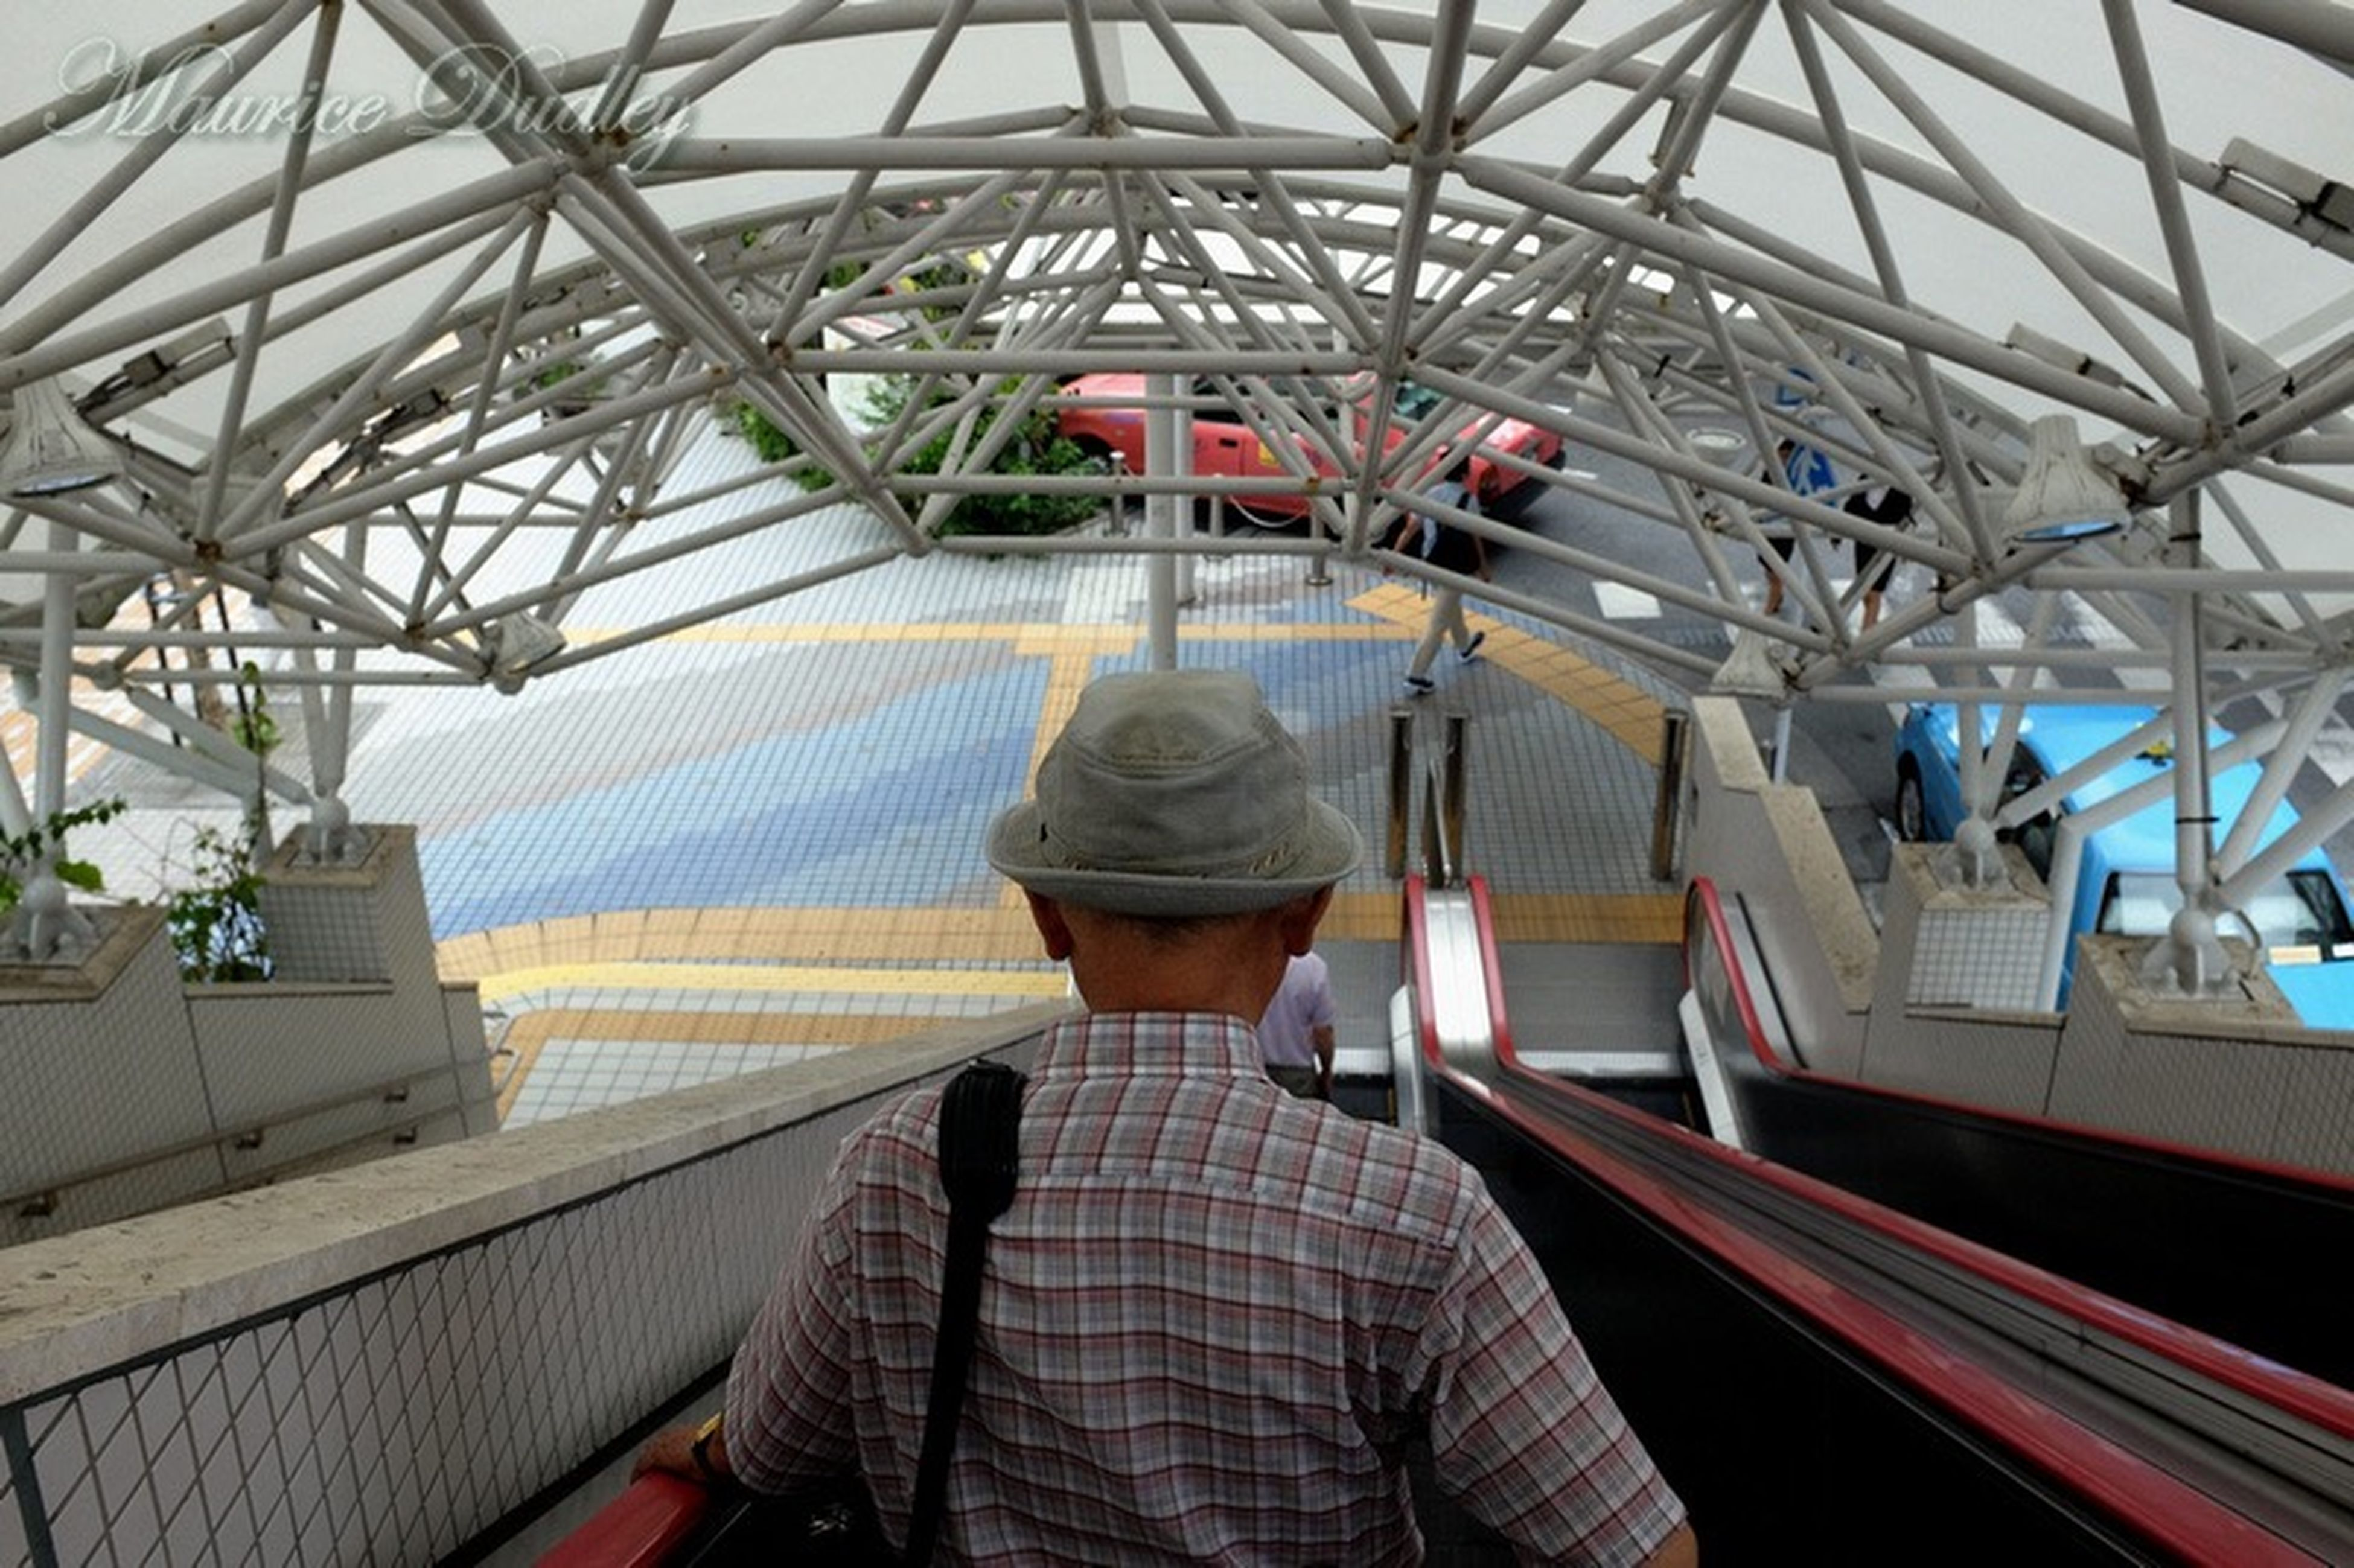 lifestyles, men, person, leisure activity, rear view, transportation, indoors, architecture, built structure, walking, railing, travel, escalator, standing, incidental people, city life, ceiling, full length